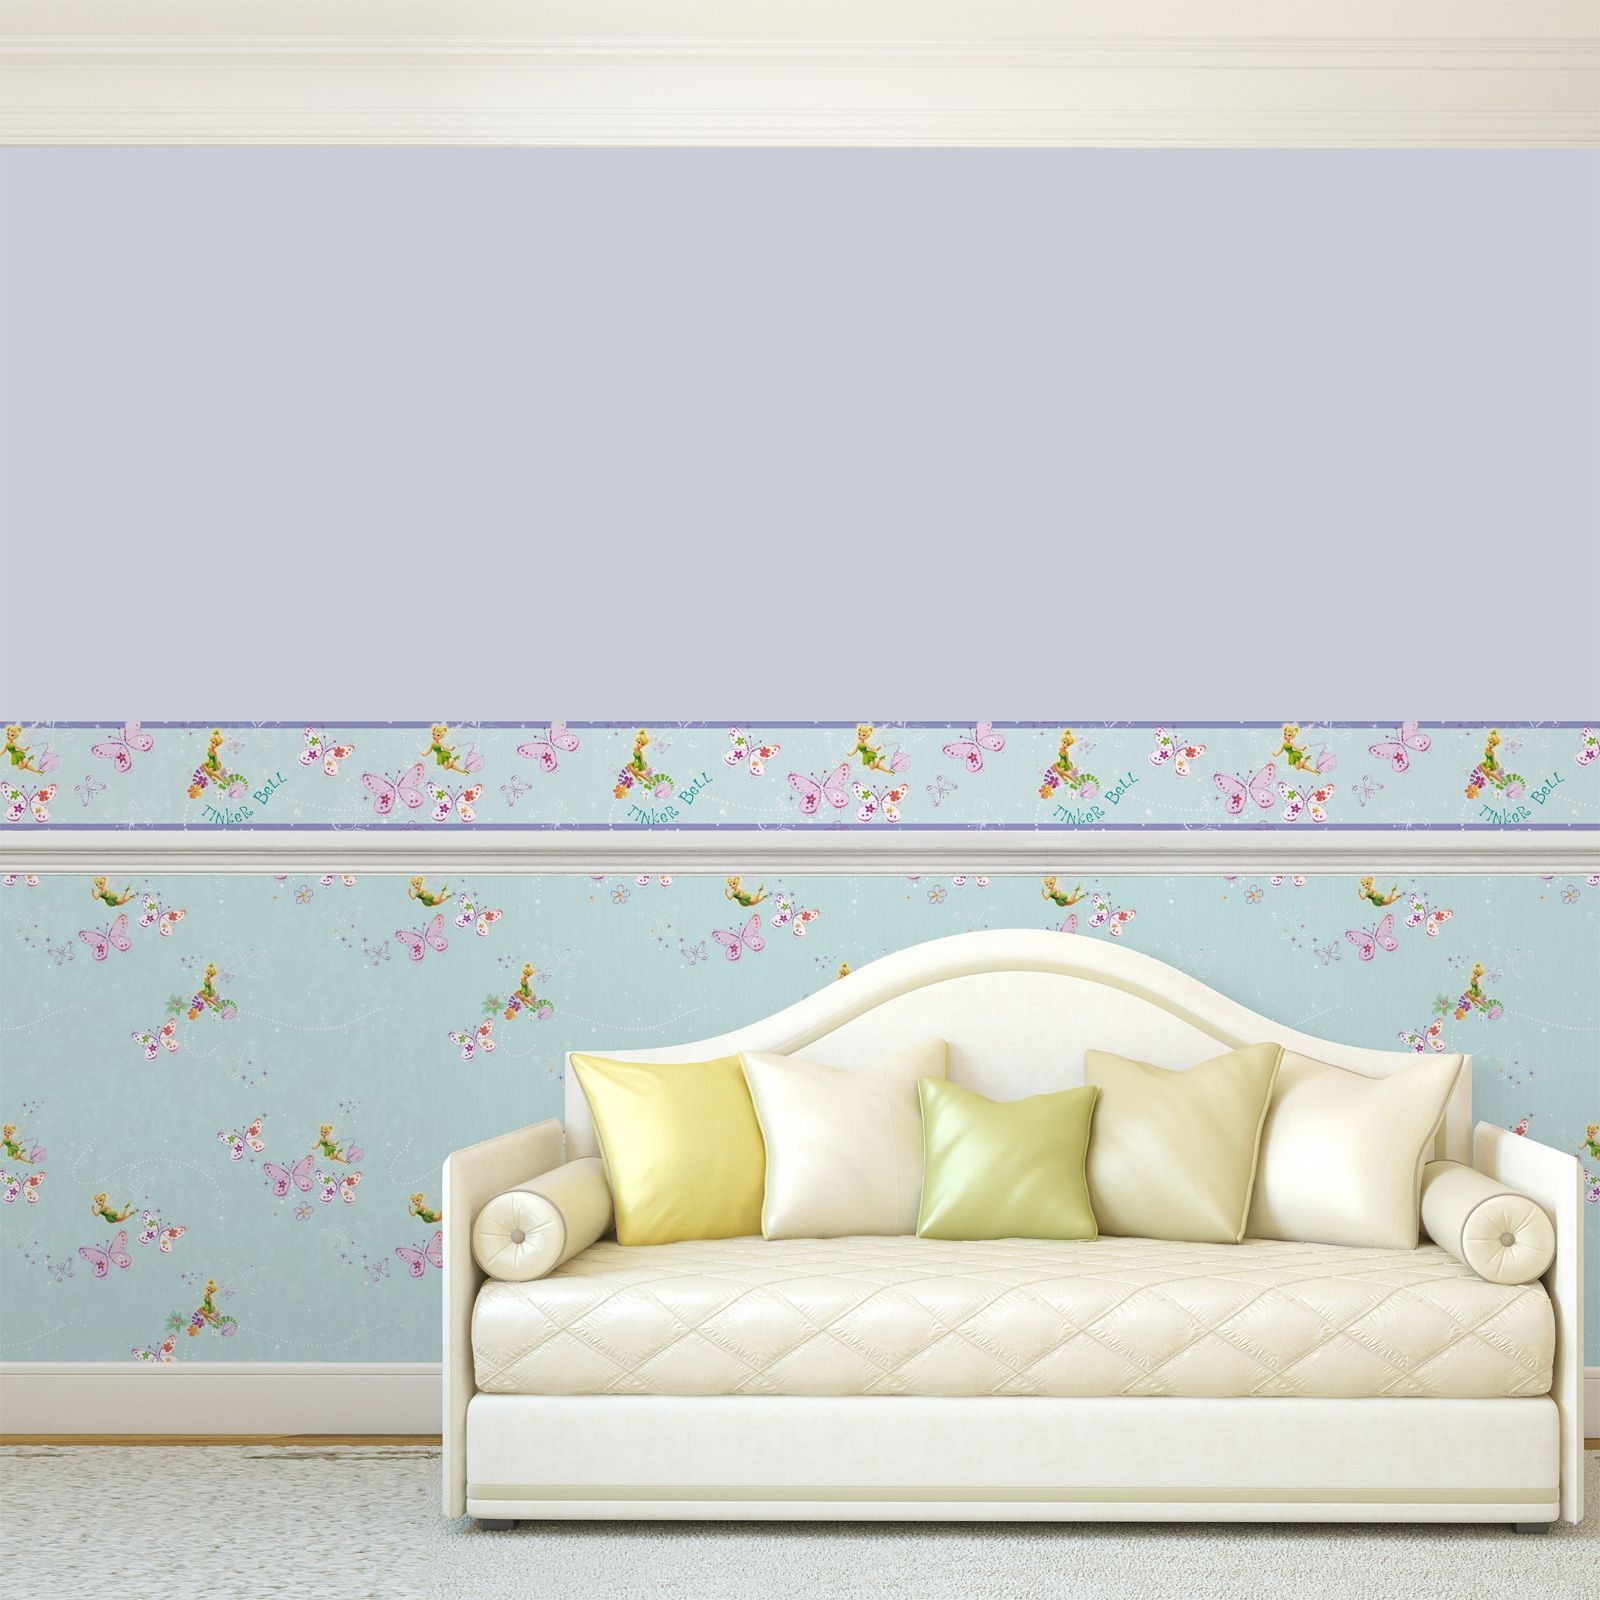 official disney fairies tink wallpaper and borders bedroom decor